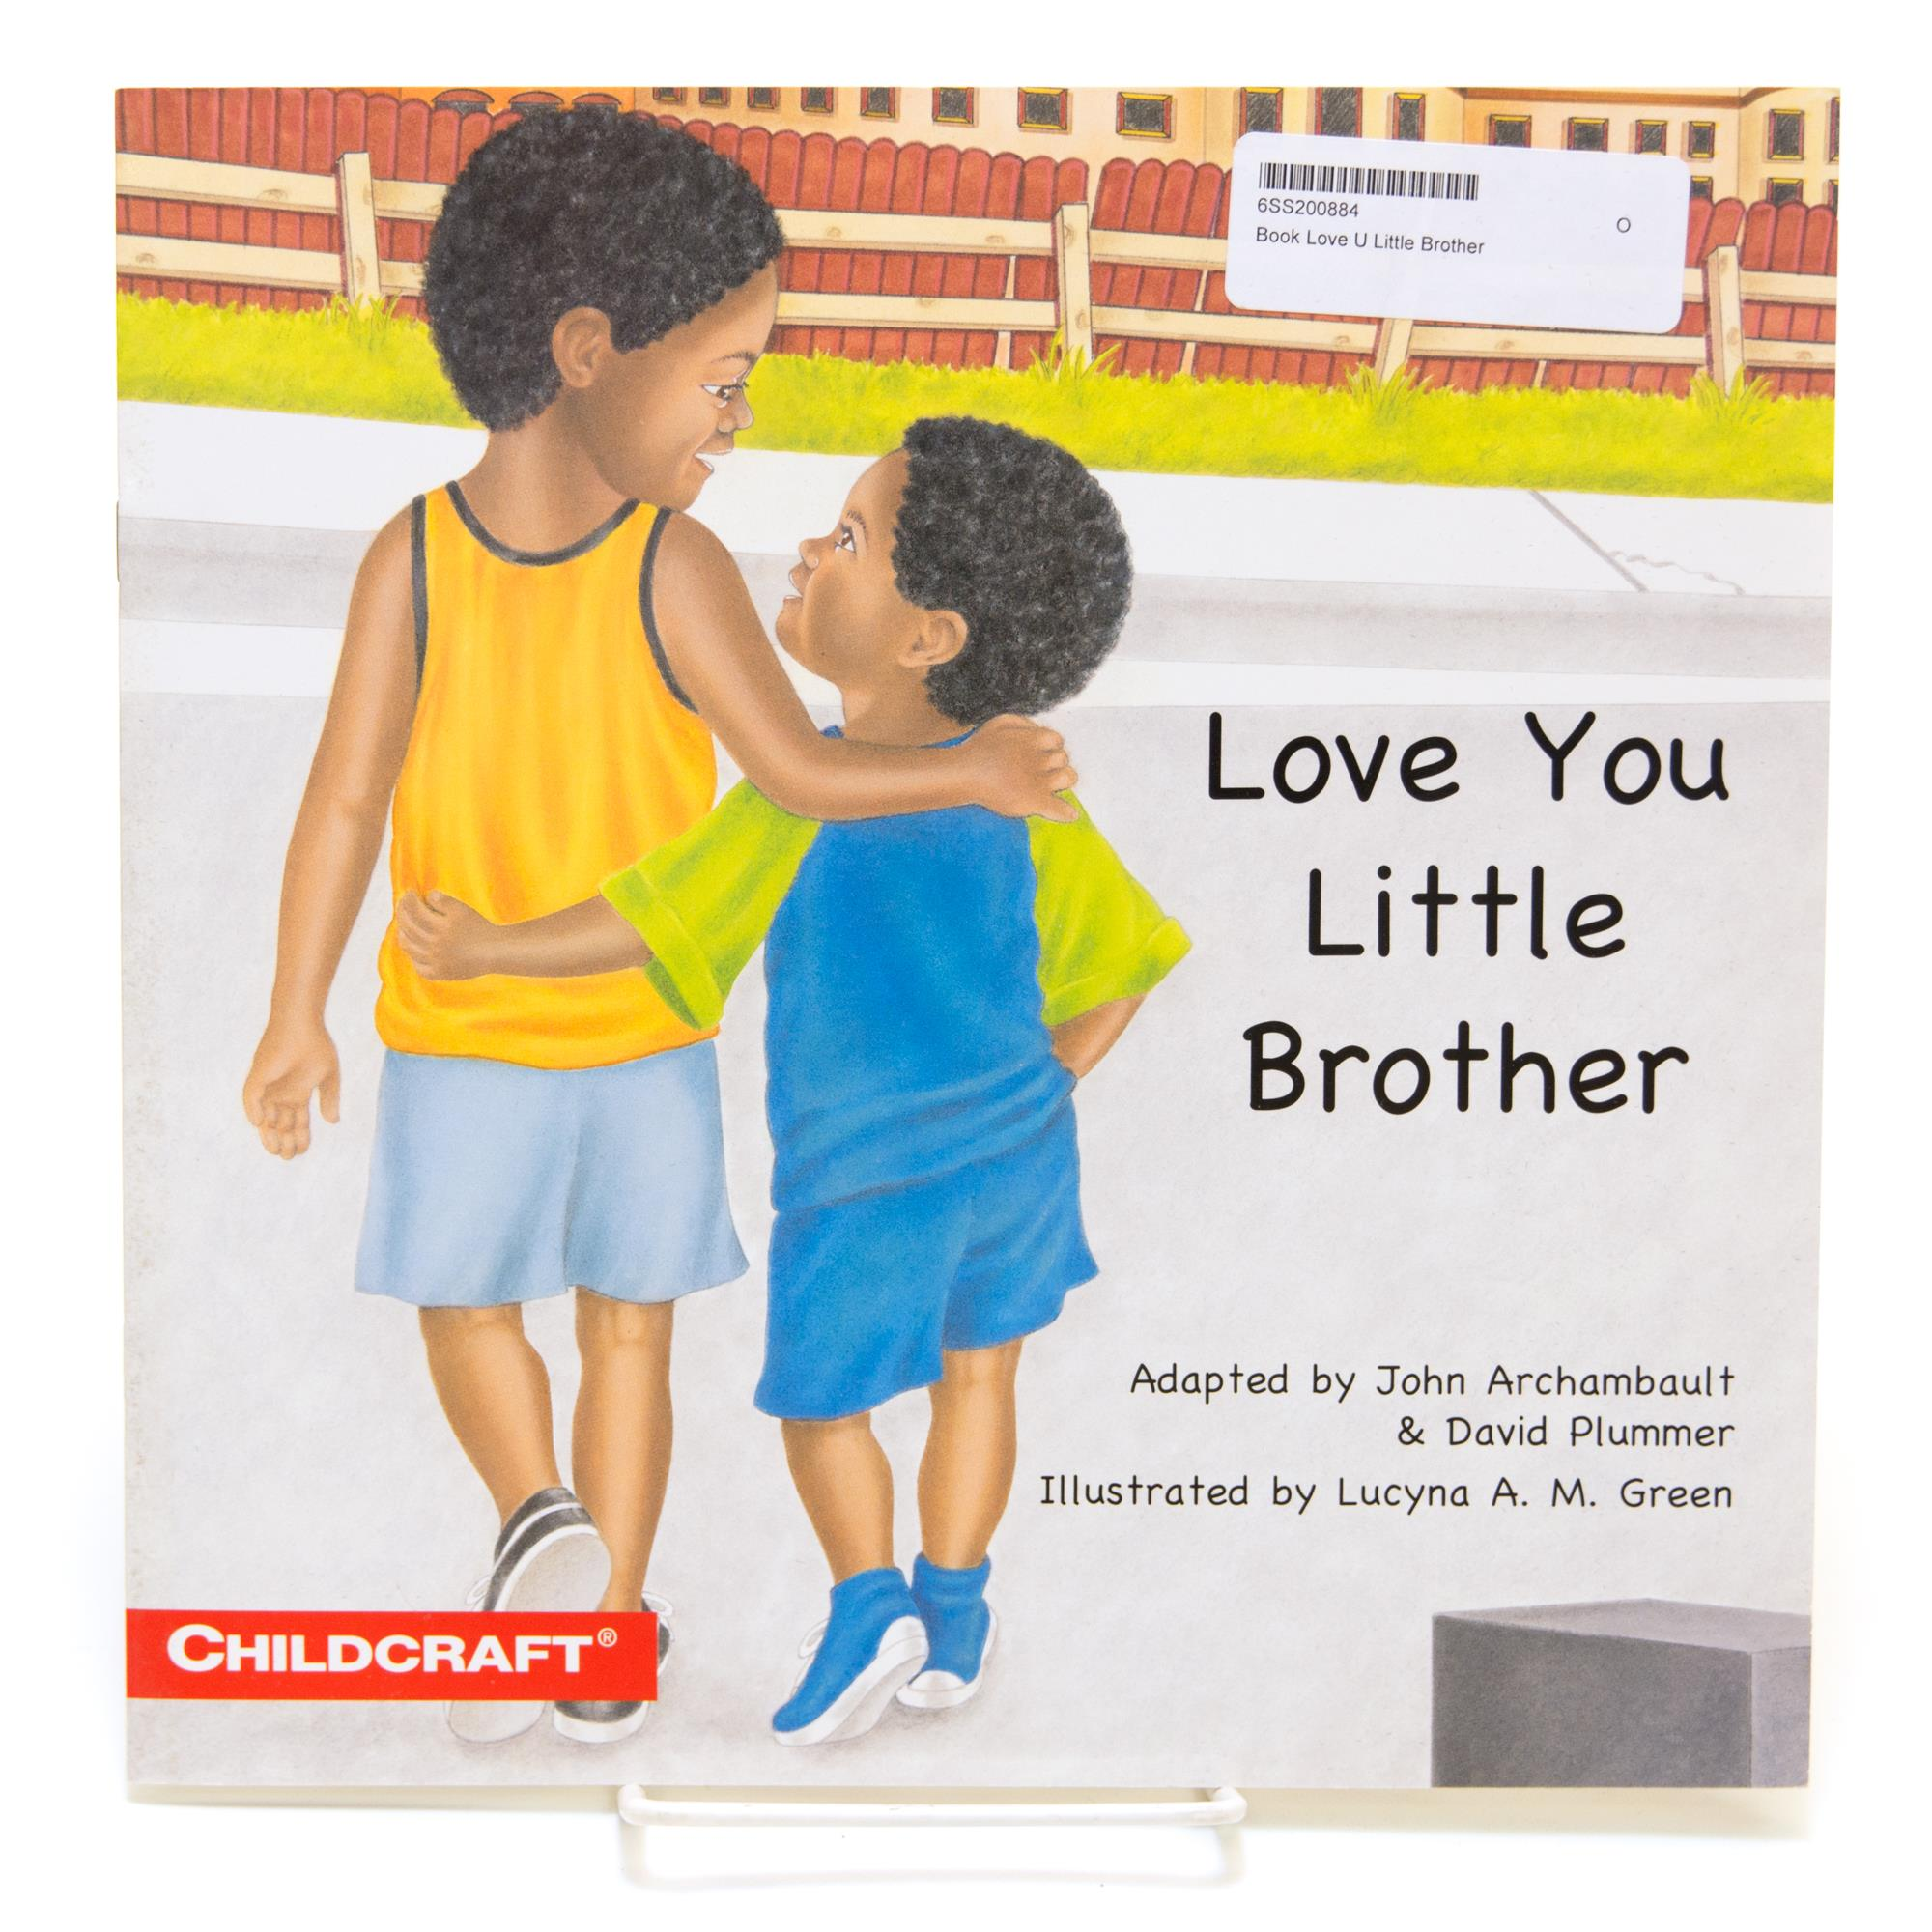 Book Love You Little Brother